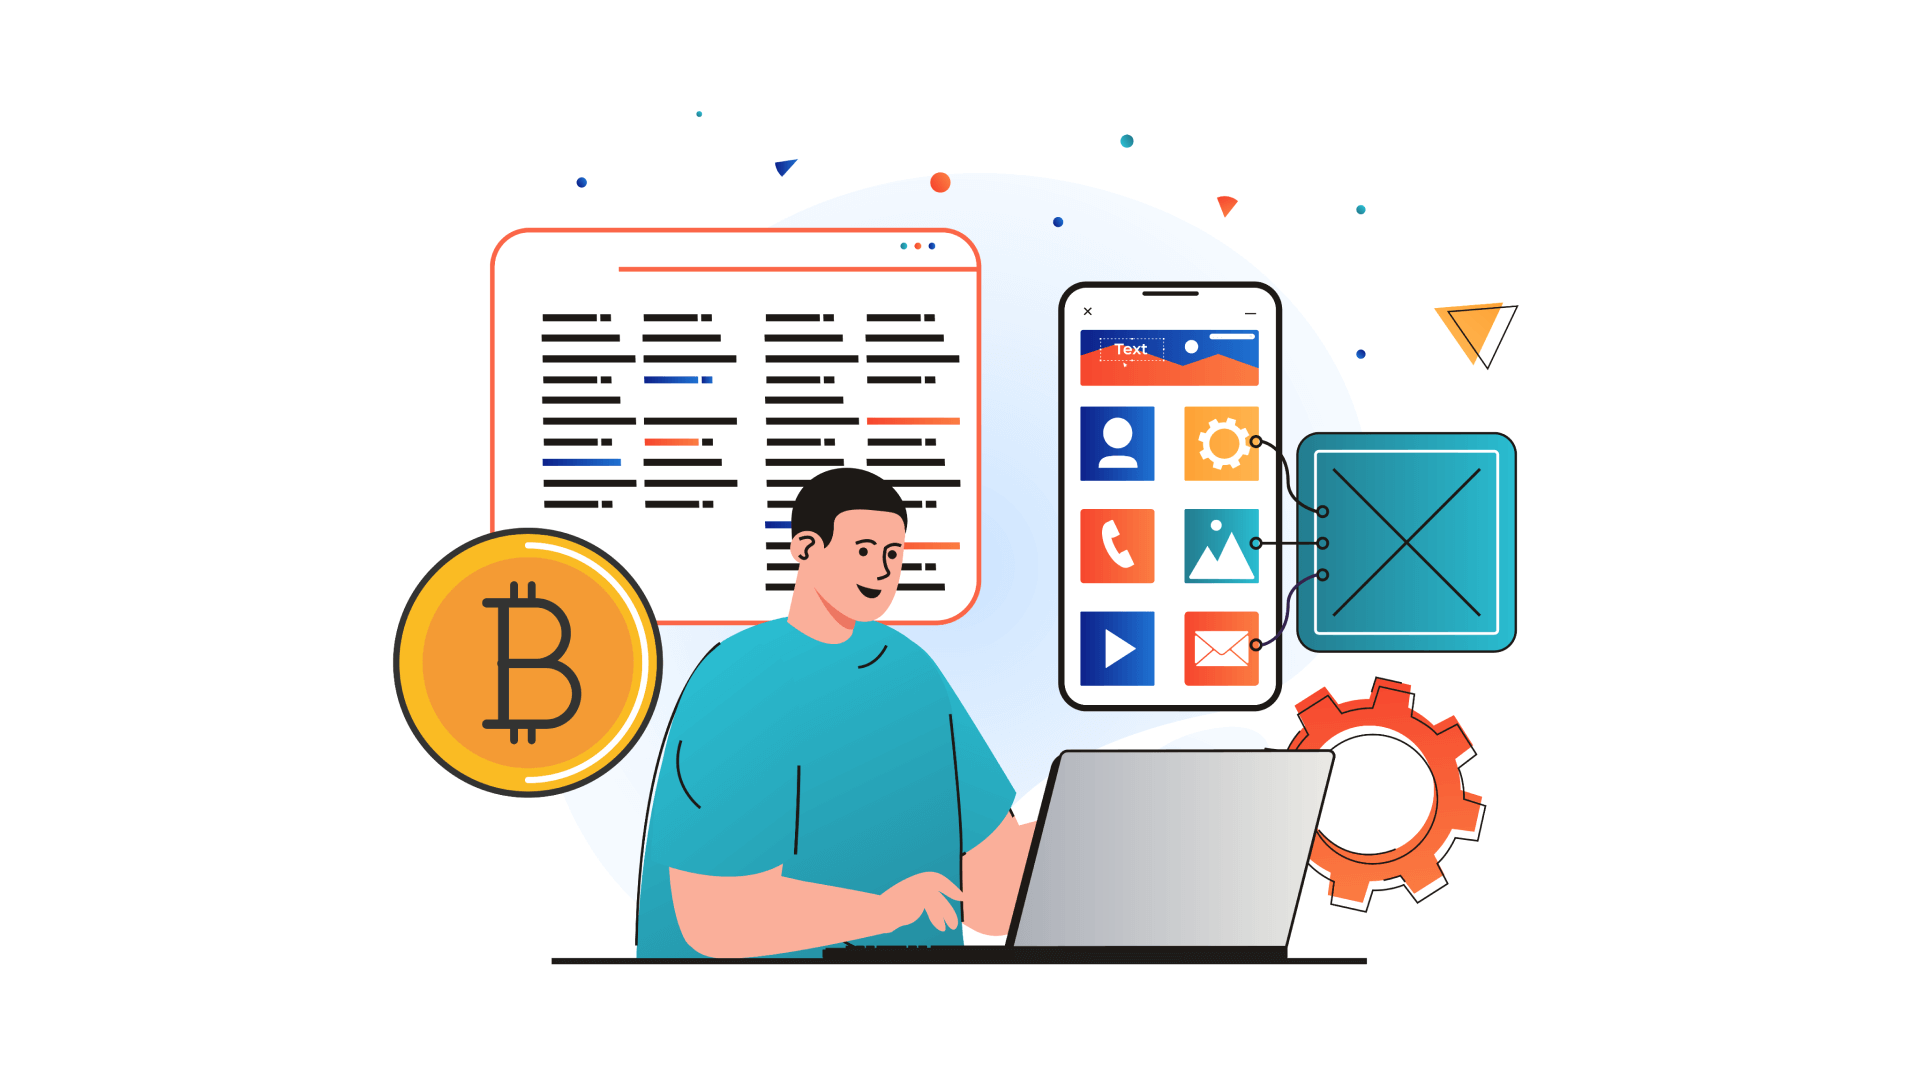 Blockchain platforms are divided into different types with unique structures and use cases.